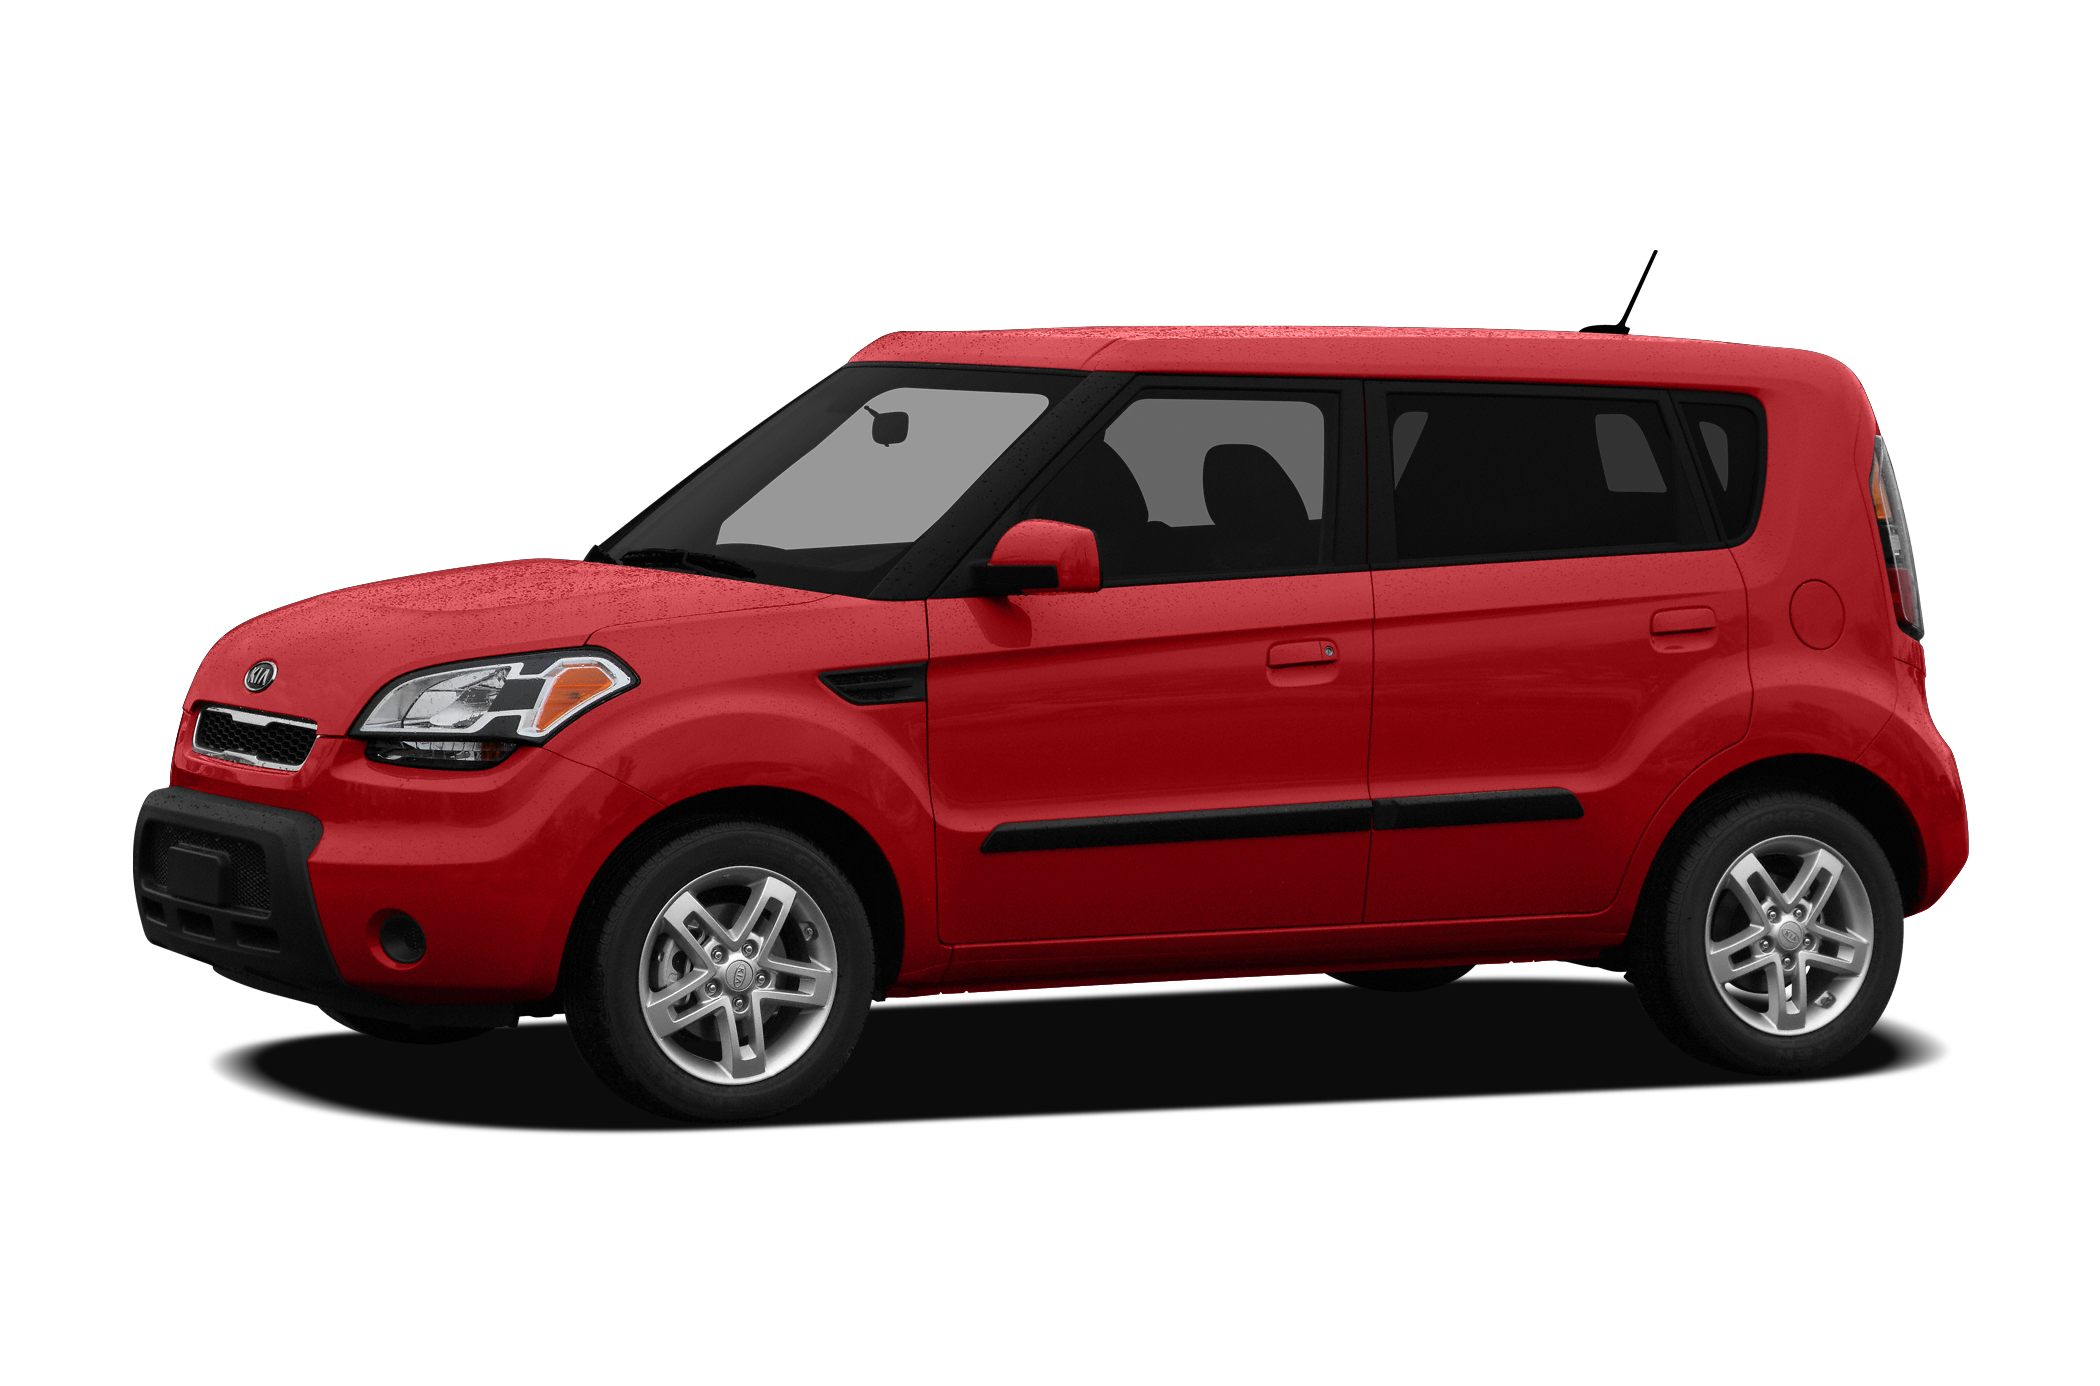 2010 Kia Soul Wagon for sale in Anchorage for $12,995 with 57,378 miles.